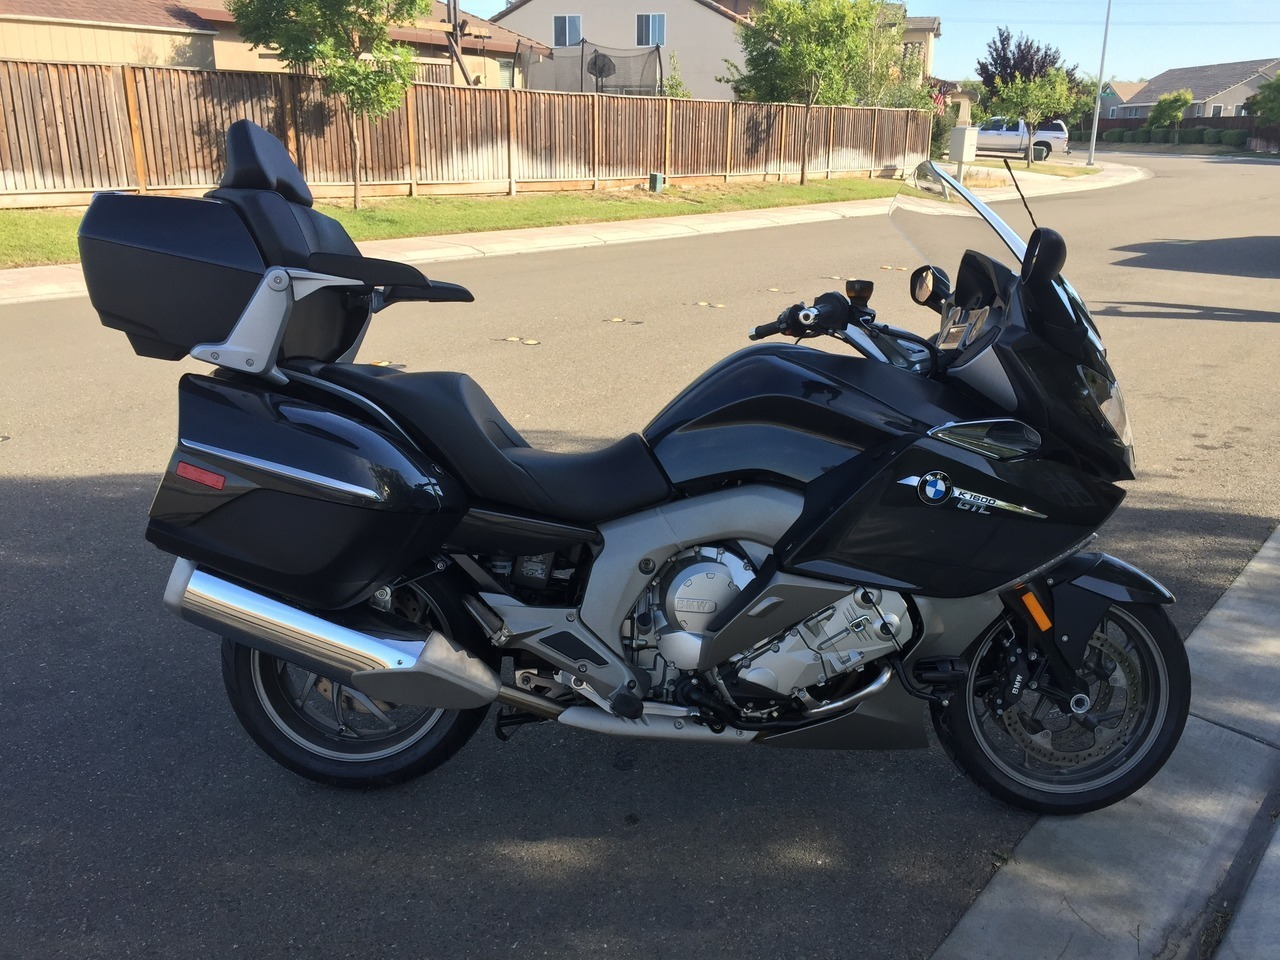 2014 bmw k1600gtl touring motorcycle from manteca ca today sale. Cars Review. Best American Auto & Cars Review